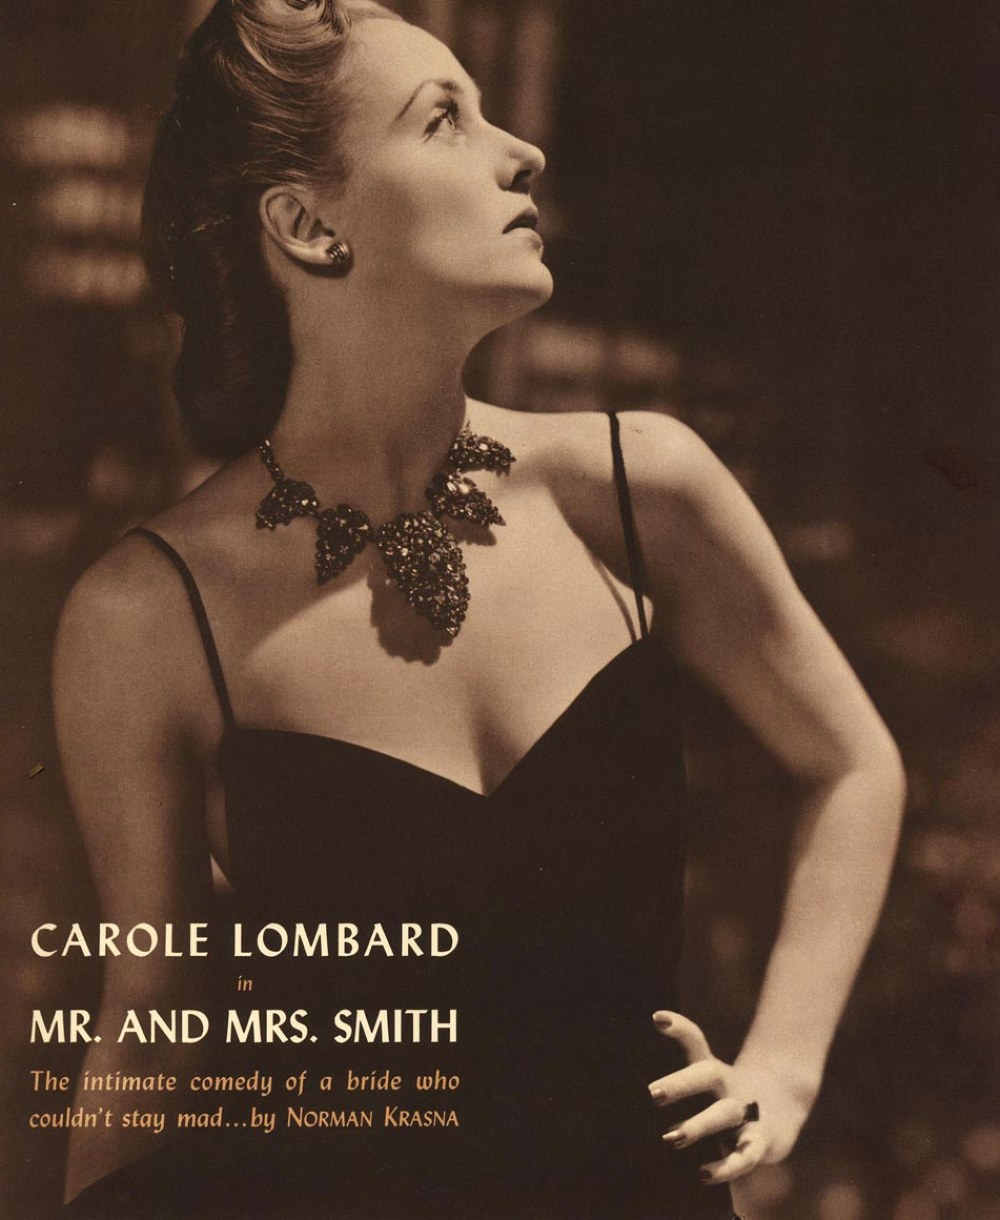 carole lombard mr. & mrs. smith 1940-41 rko yearbook 00a